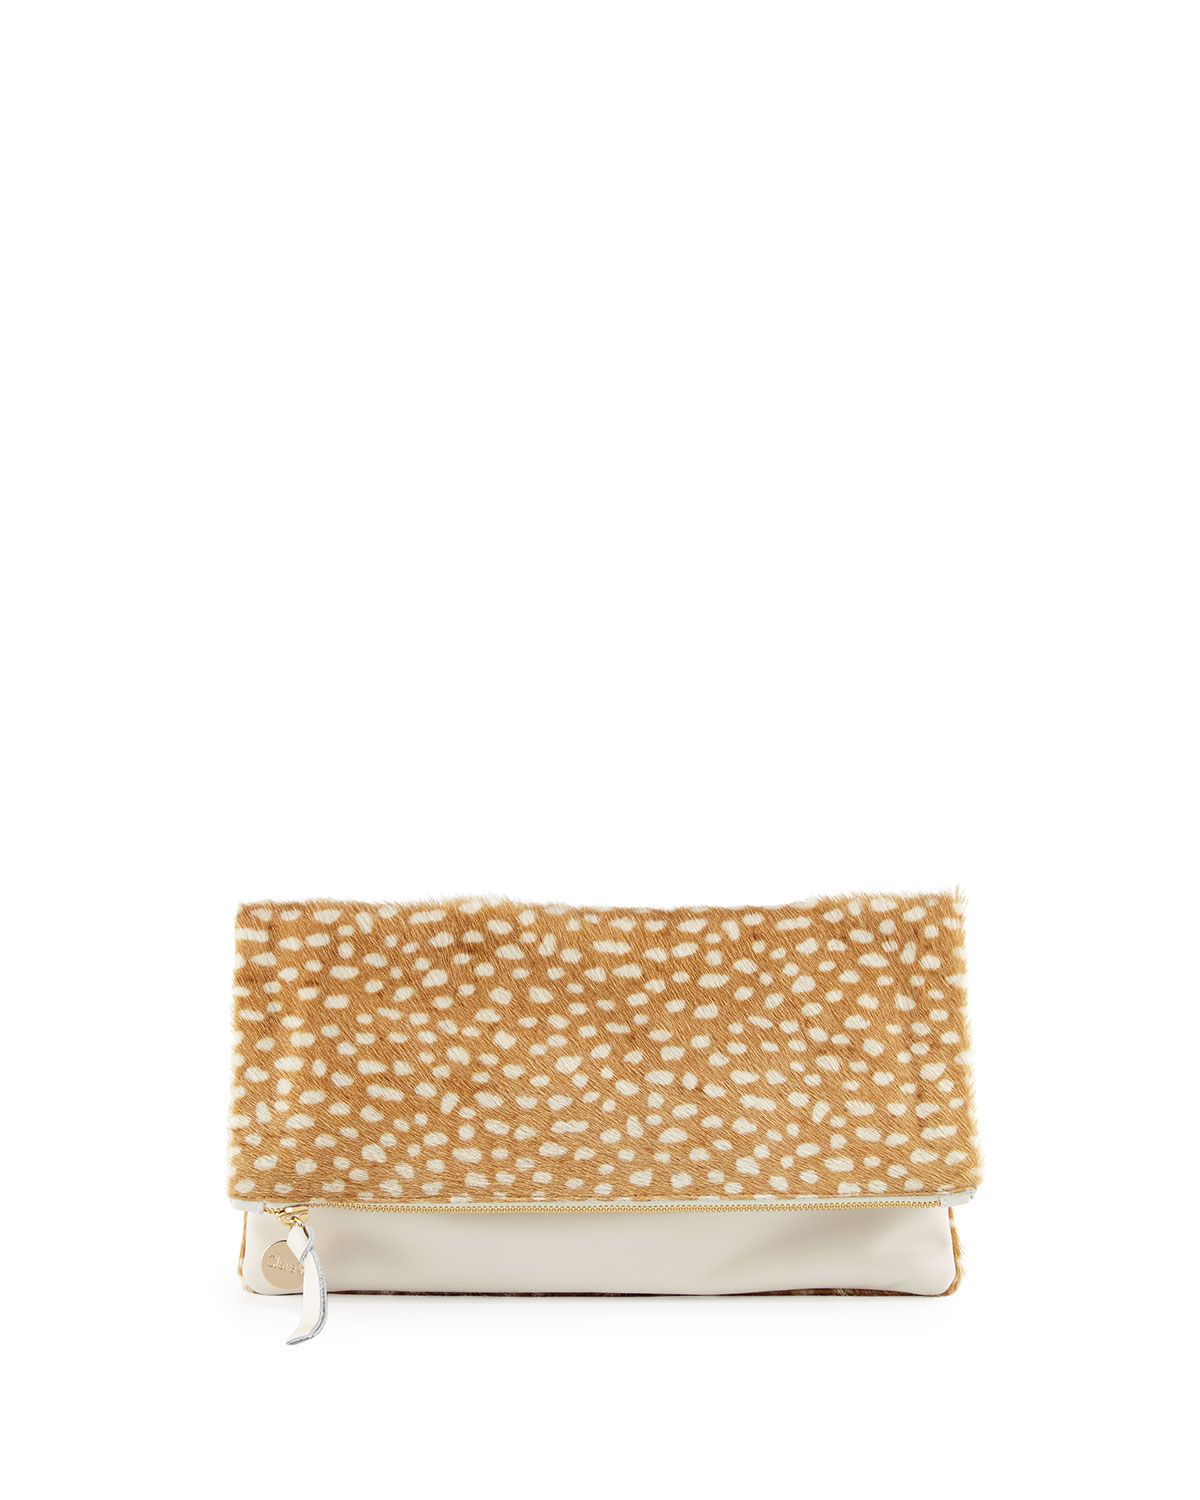 0fca39f9f Clare V. Supreme Calf Hair Fold-Over Clutch Bag | Neiman Marcus